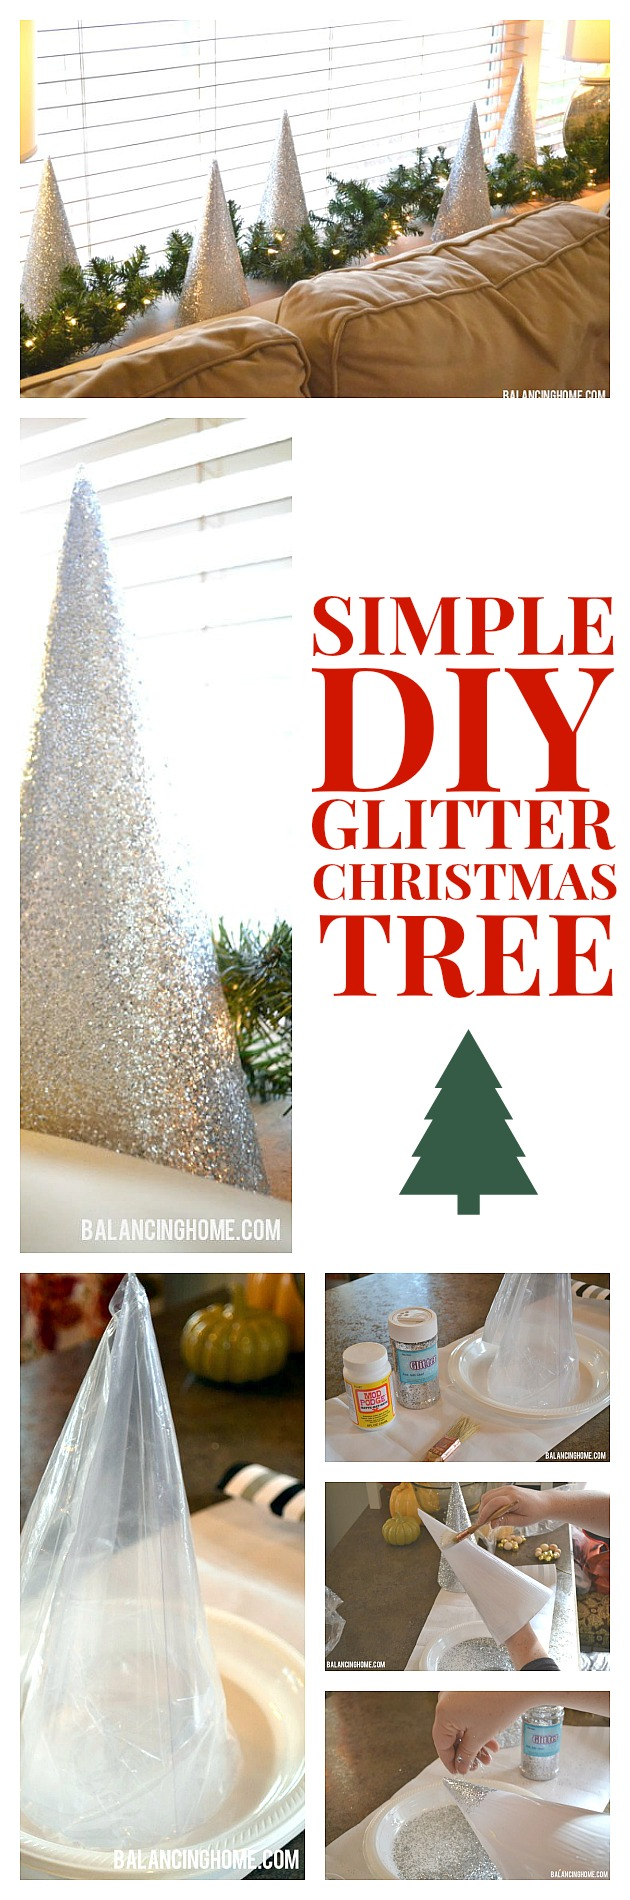 So simple--the kids could do it. DIY glitter Christmas tree for a fraction of the cost.